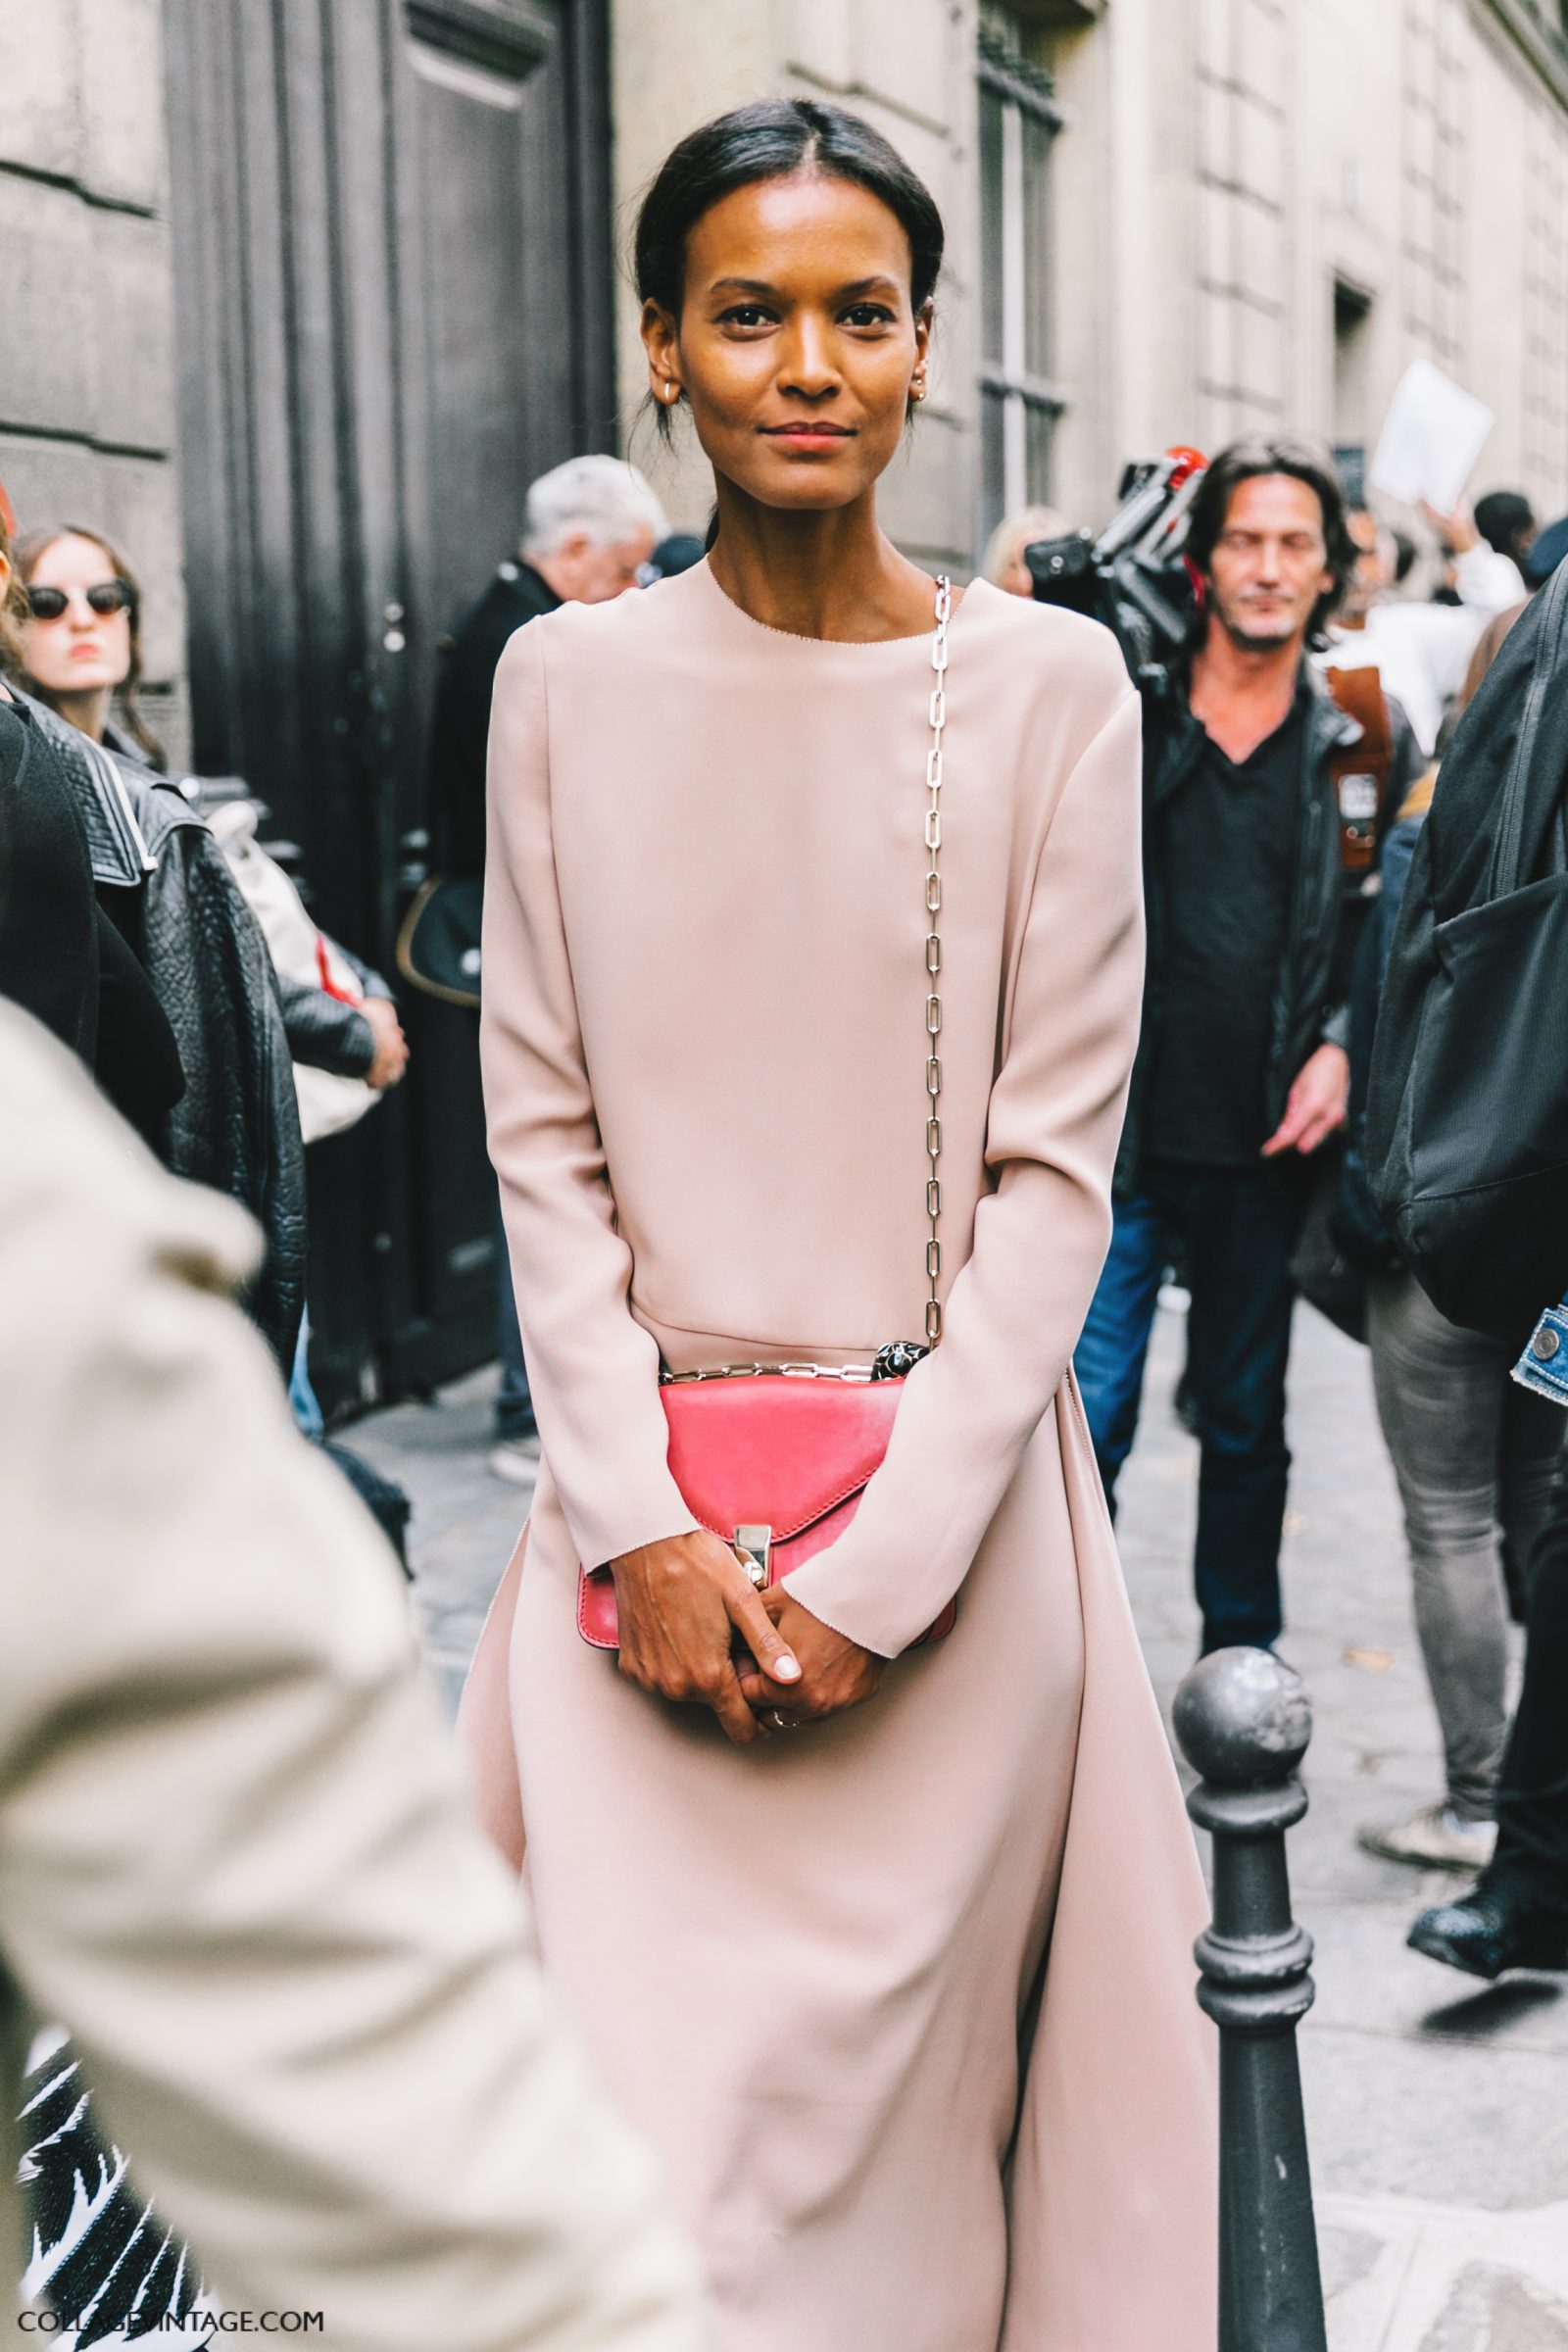 pfw-paris_fashion_week_ss17-street_style-outfits-collage_vintage-valentino-balenciaga-celine-153